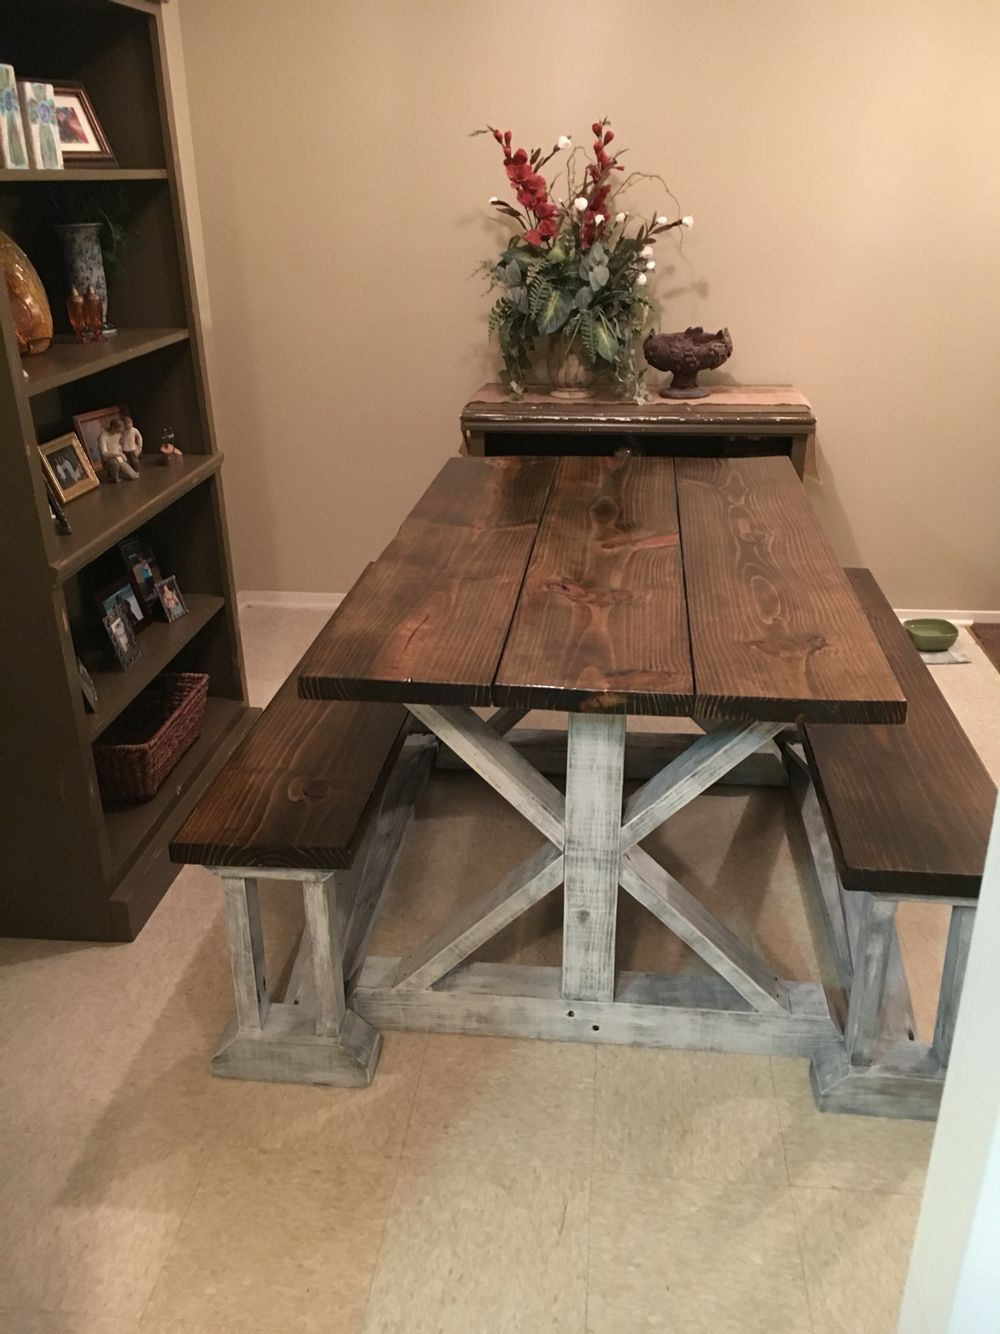 farm table with bench Pin by Susie Weaver on home in 2018 | Pinterest | Farmhouse Table  farm table with bench